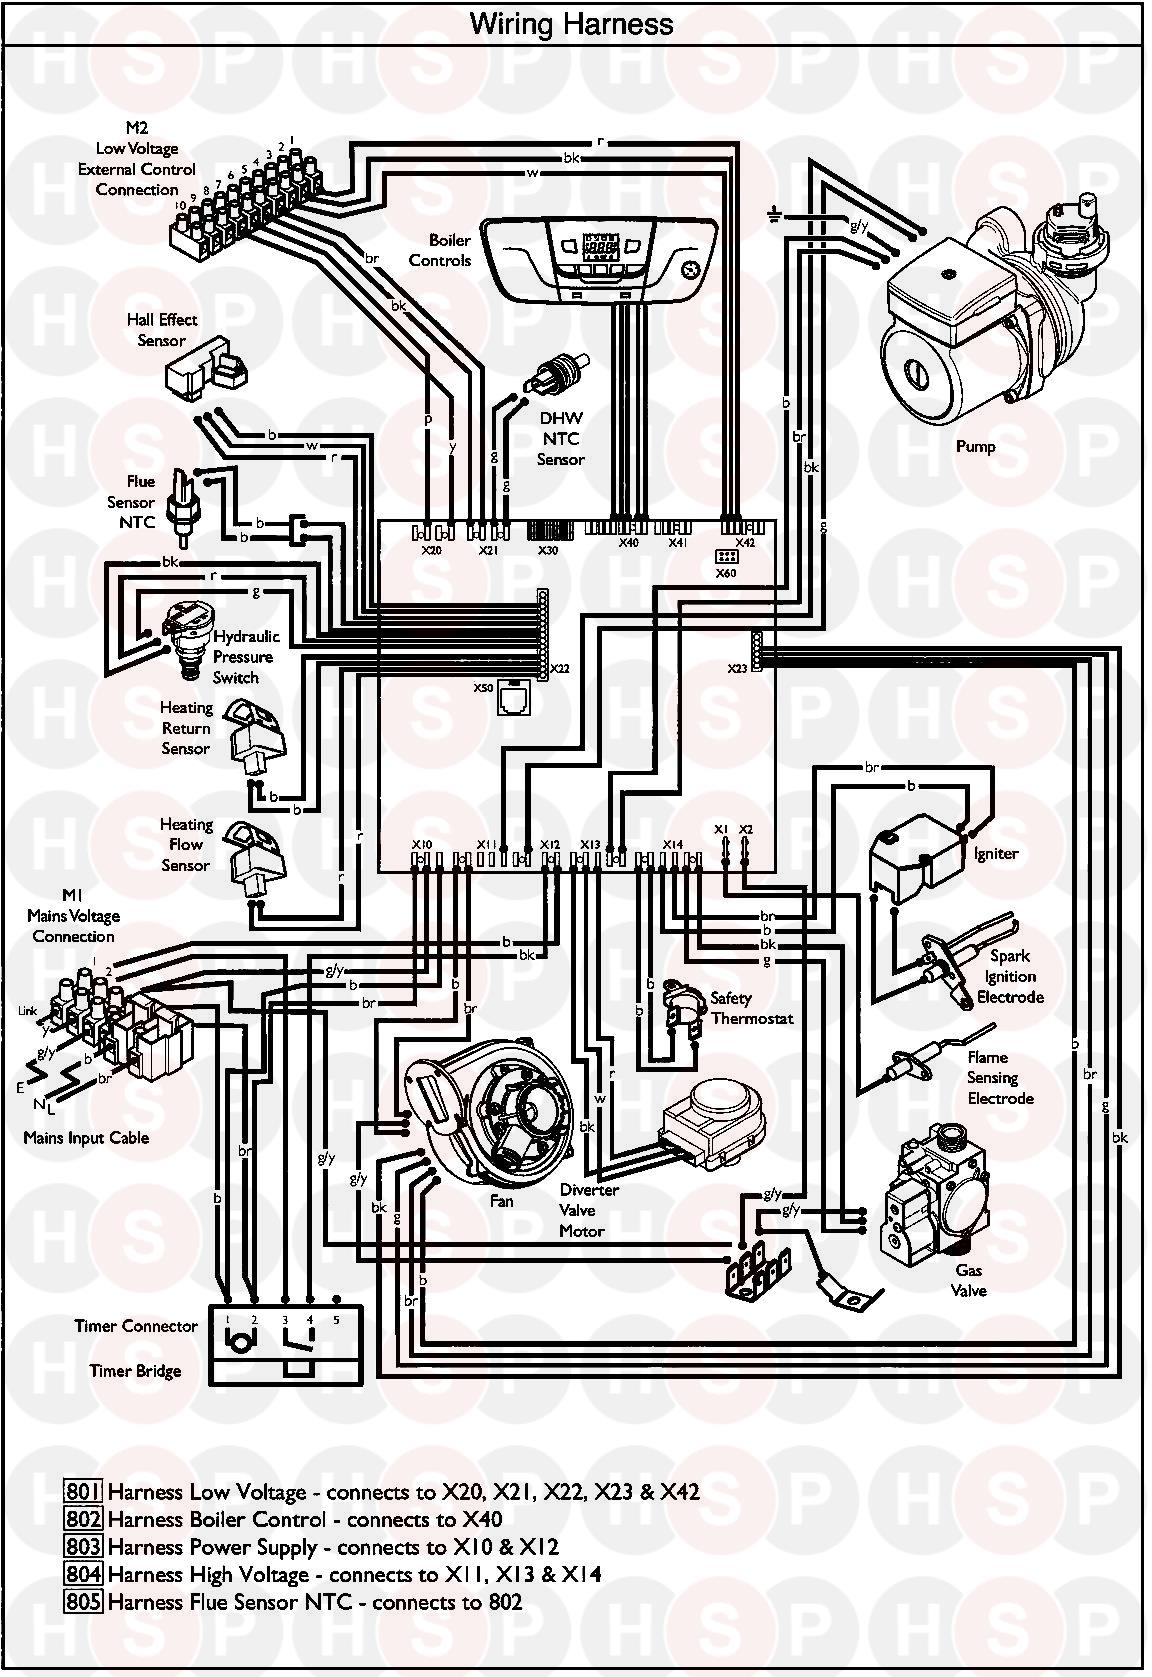 baxi boiler  diagram of baxi boiler